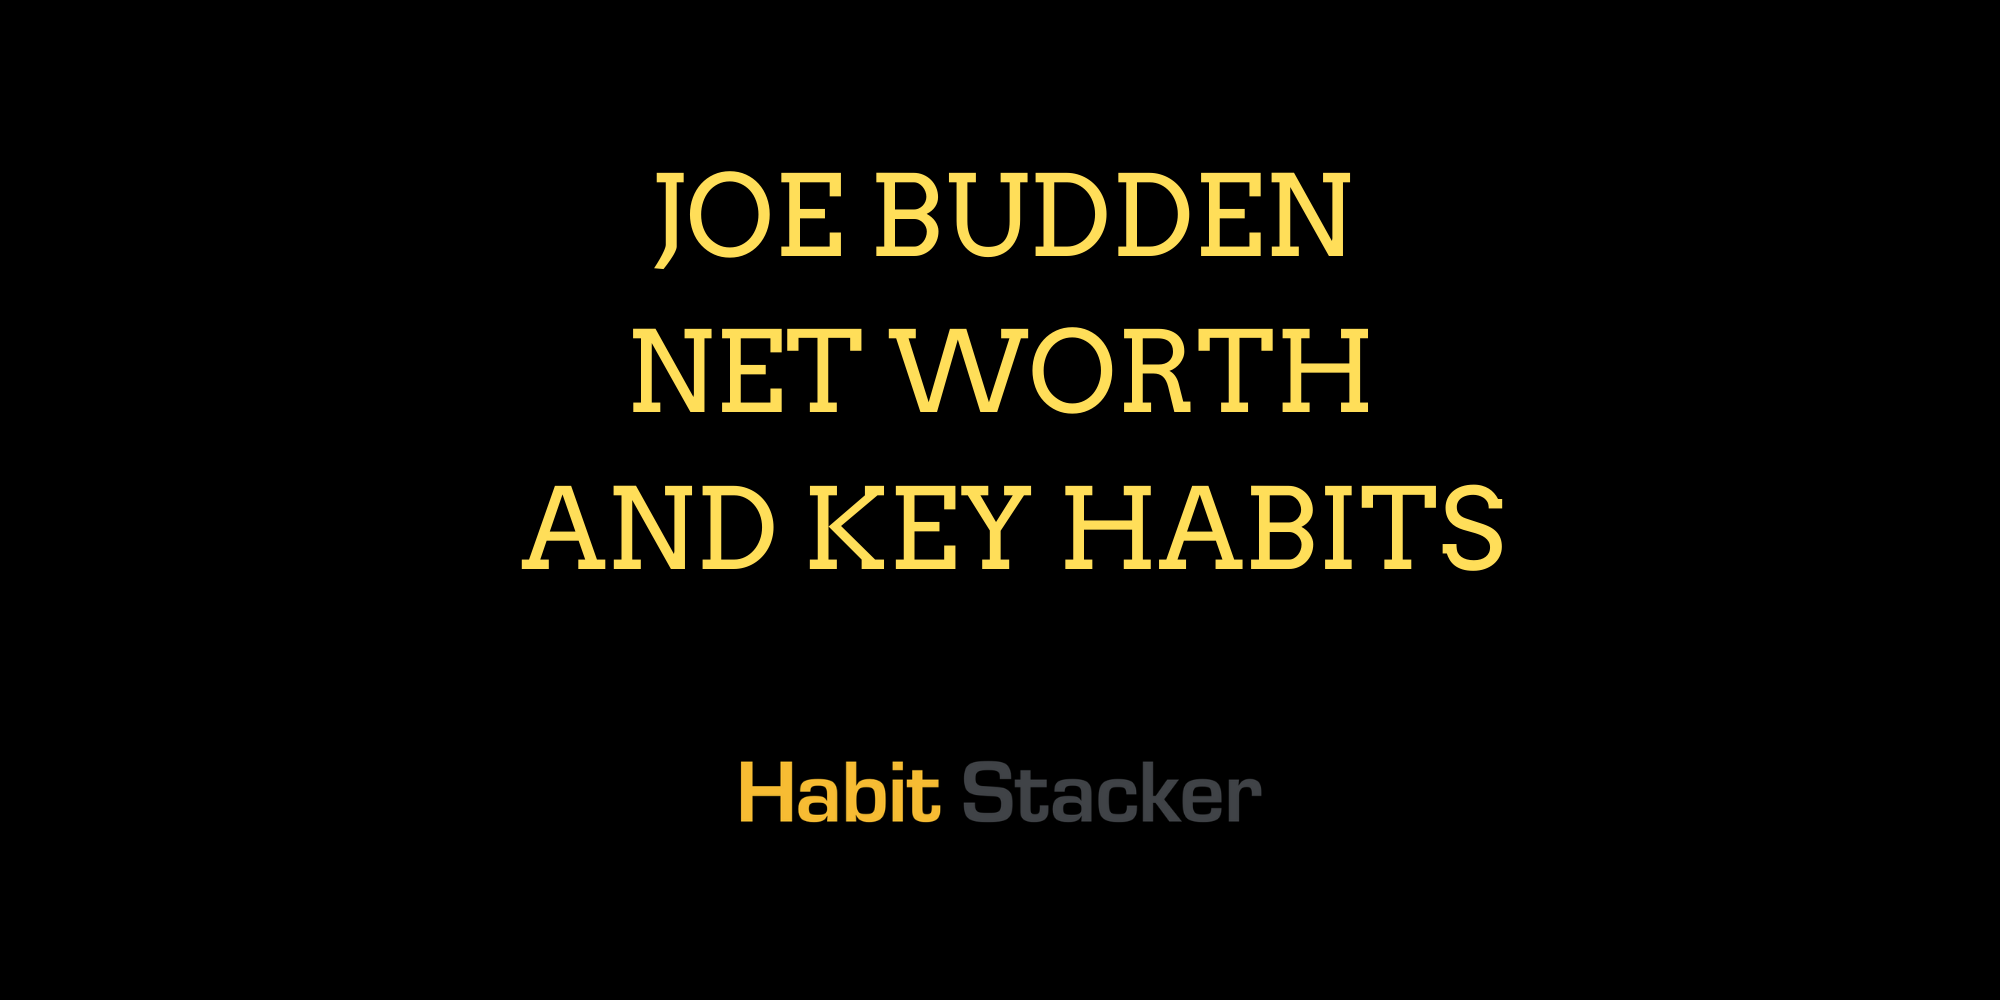 Joe Budden Net Worth and Key Habits